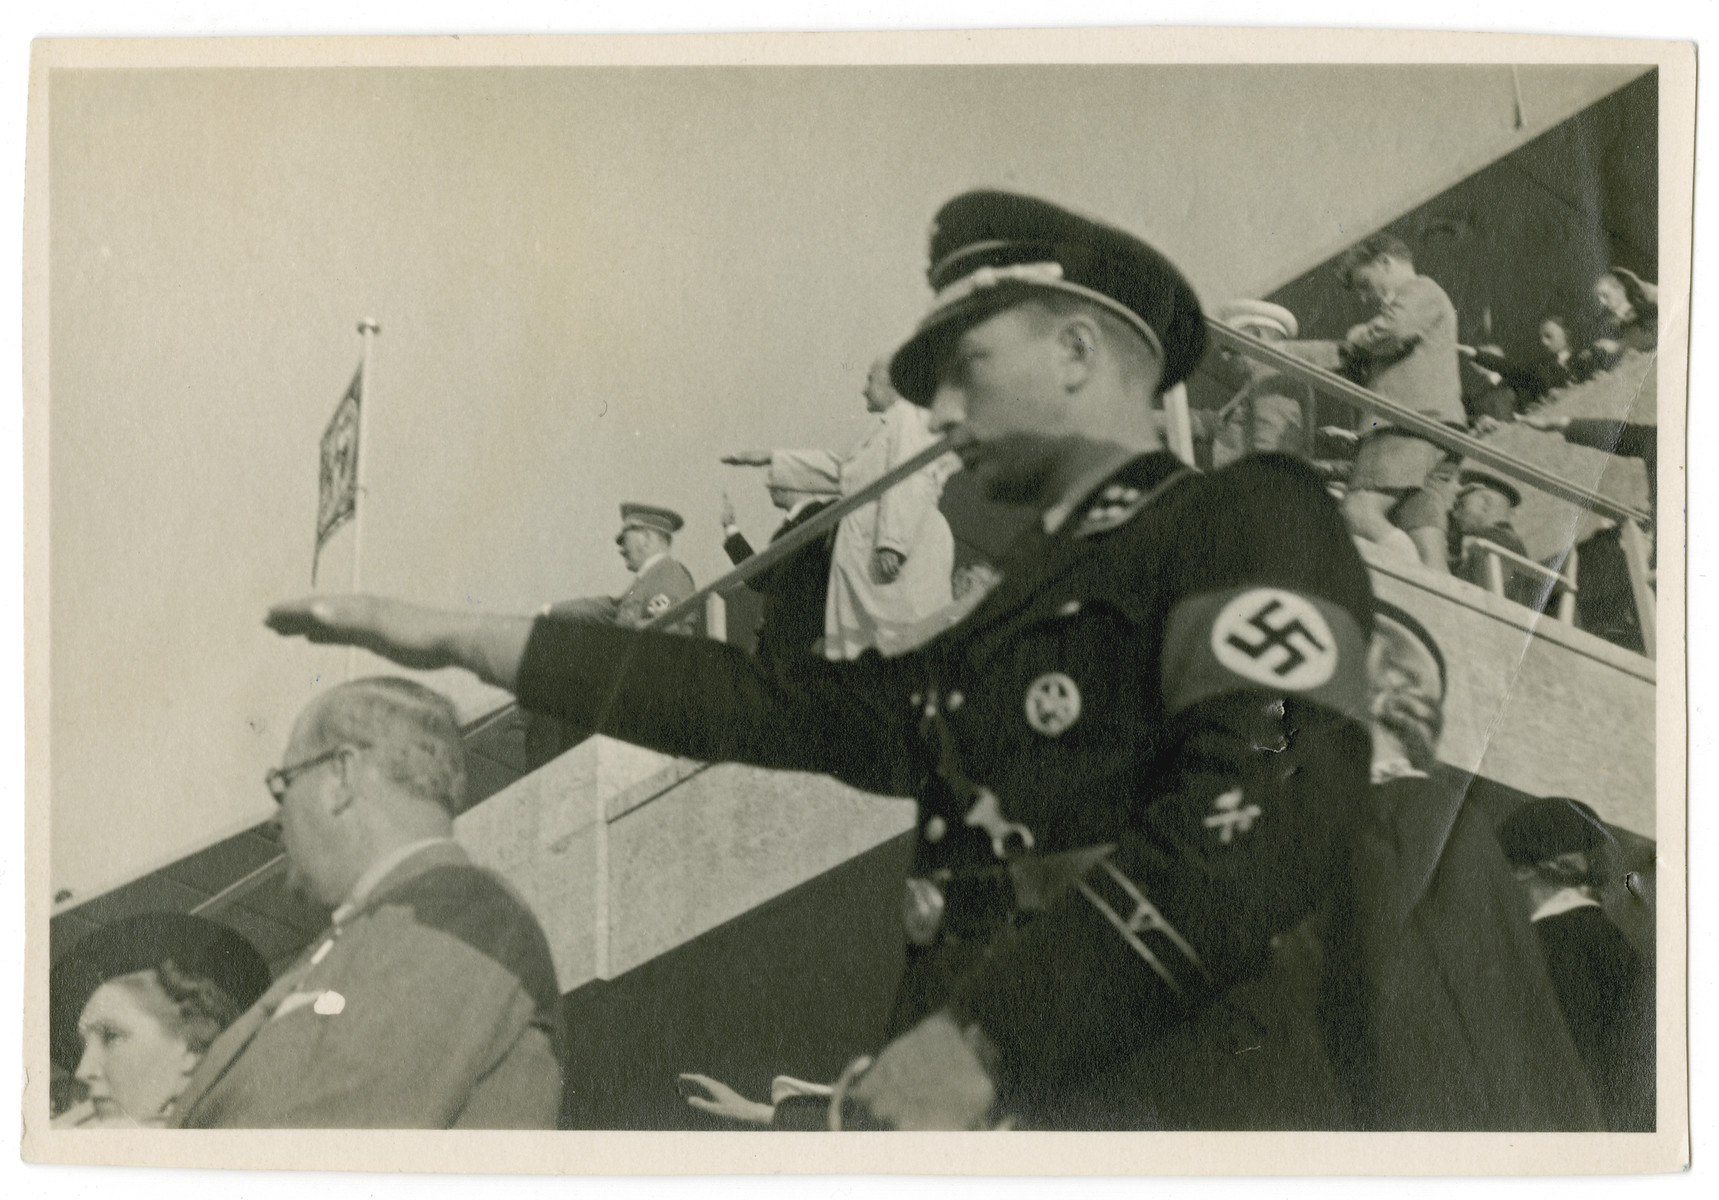 An SS man gives the Nazi salute at the start of the Berlin Olympics.  The saluting SS-man has been identified as SS-Sturmbannführer Hermnann Fegelein  The photograph was taken by Blanche Seimars (later Ensz) a young American woman visiting Germany from the United States.